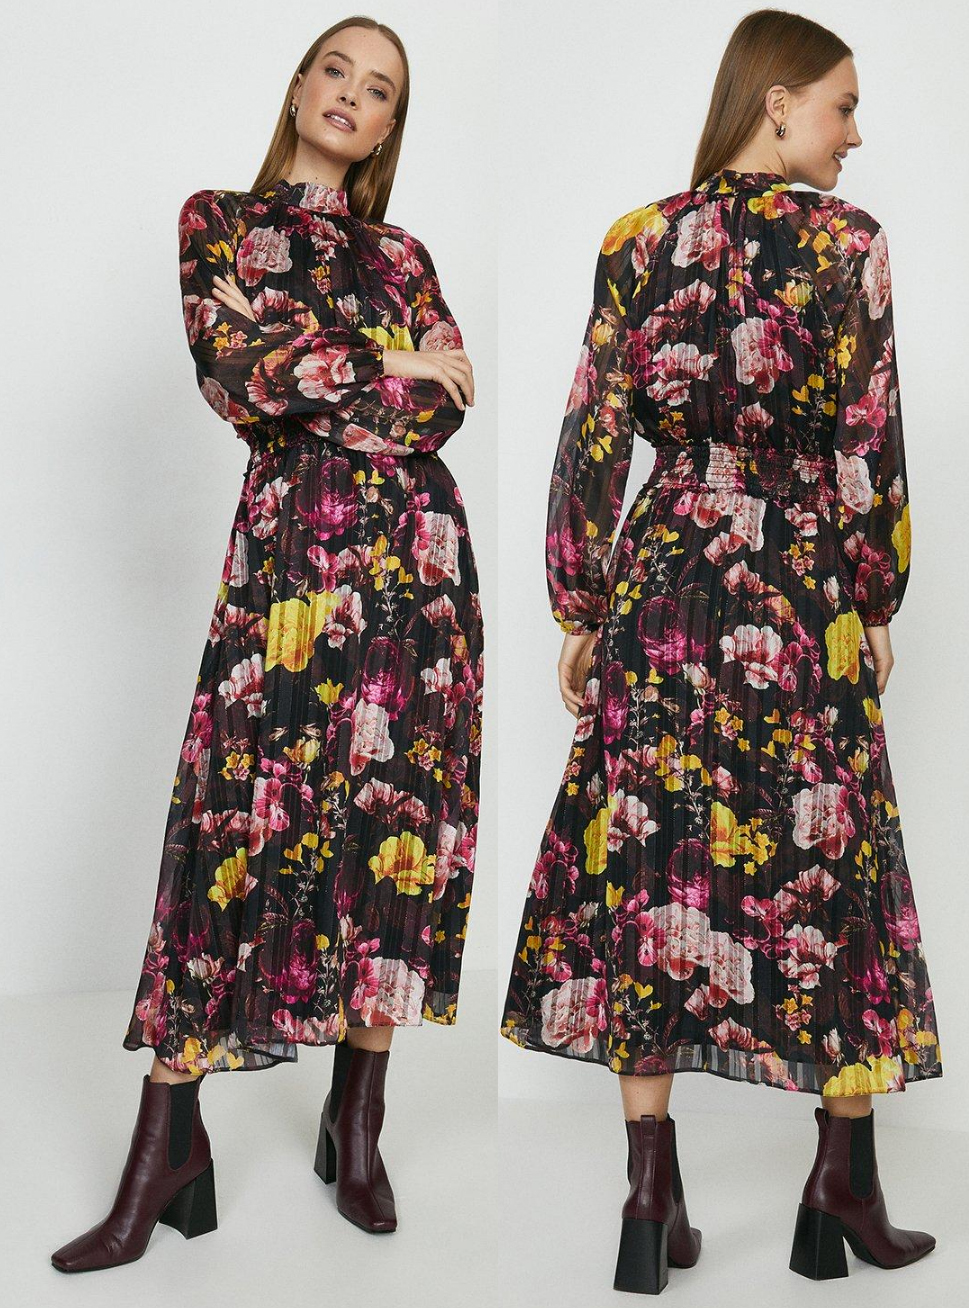 Yellow and Pink Floral Dress. Floral Dress for a Summer Wedding Guest 2021. What to wear to a Summer Wedding 2021. Coast Floral Dress 2021. Floral Dress for the races 2021. What to wear to the Races 2021. Royal Ascot outfit ideas 2021. What to wear for Royal Ascot 2021.